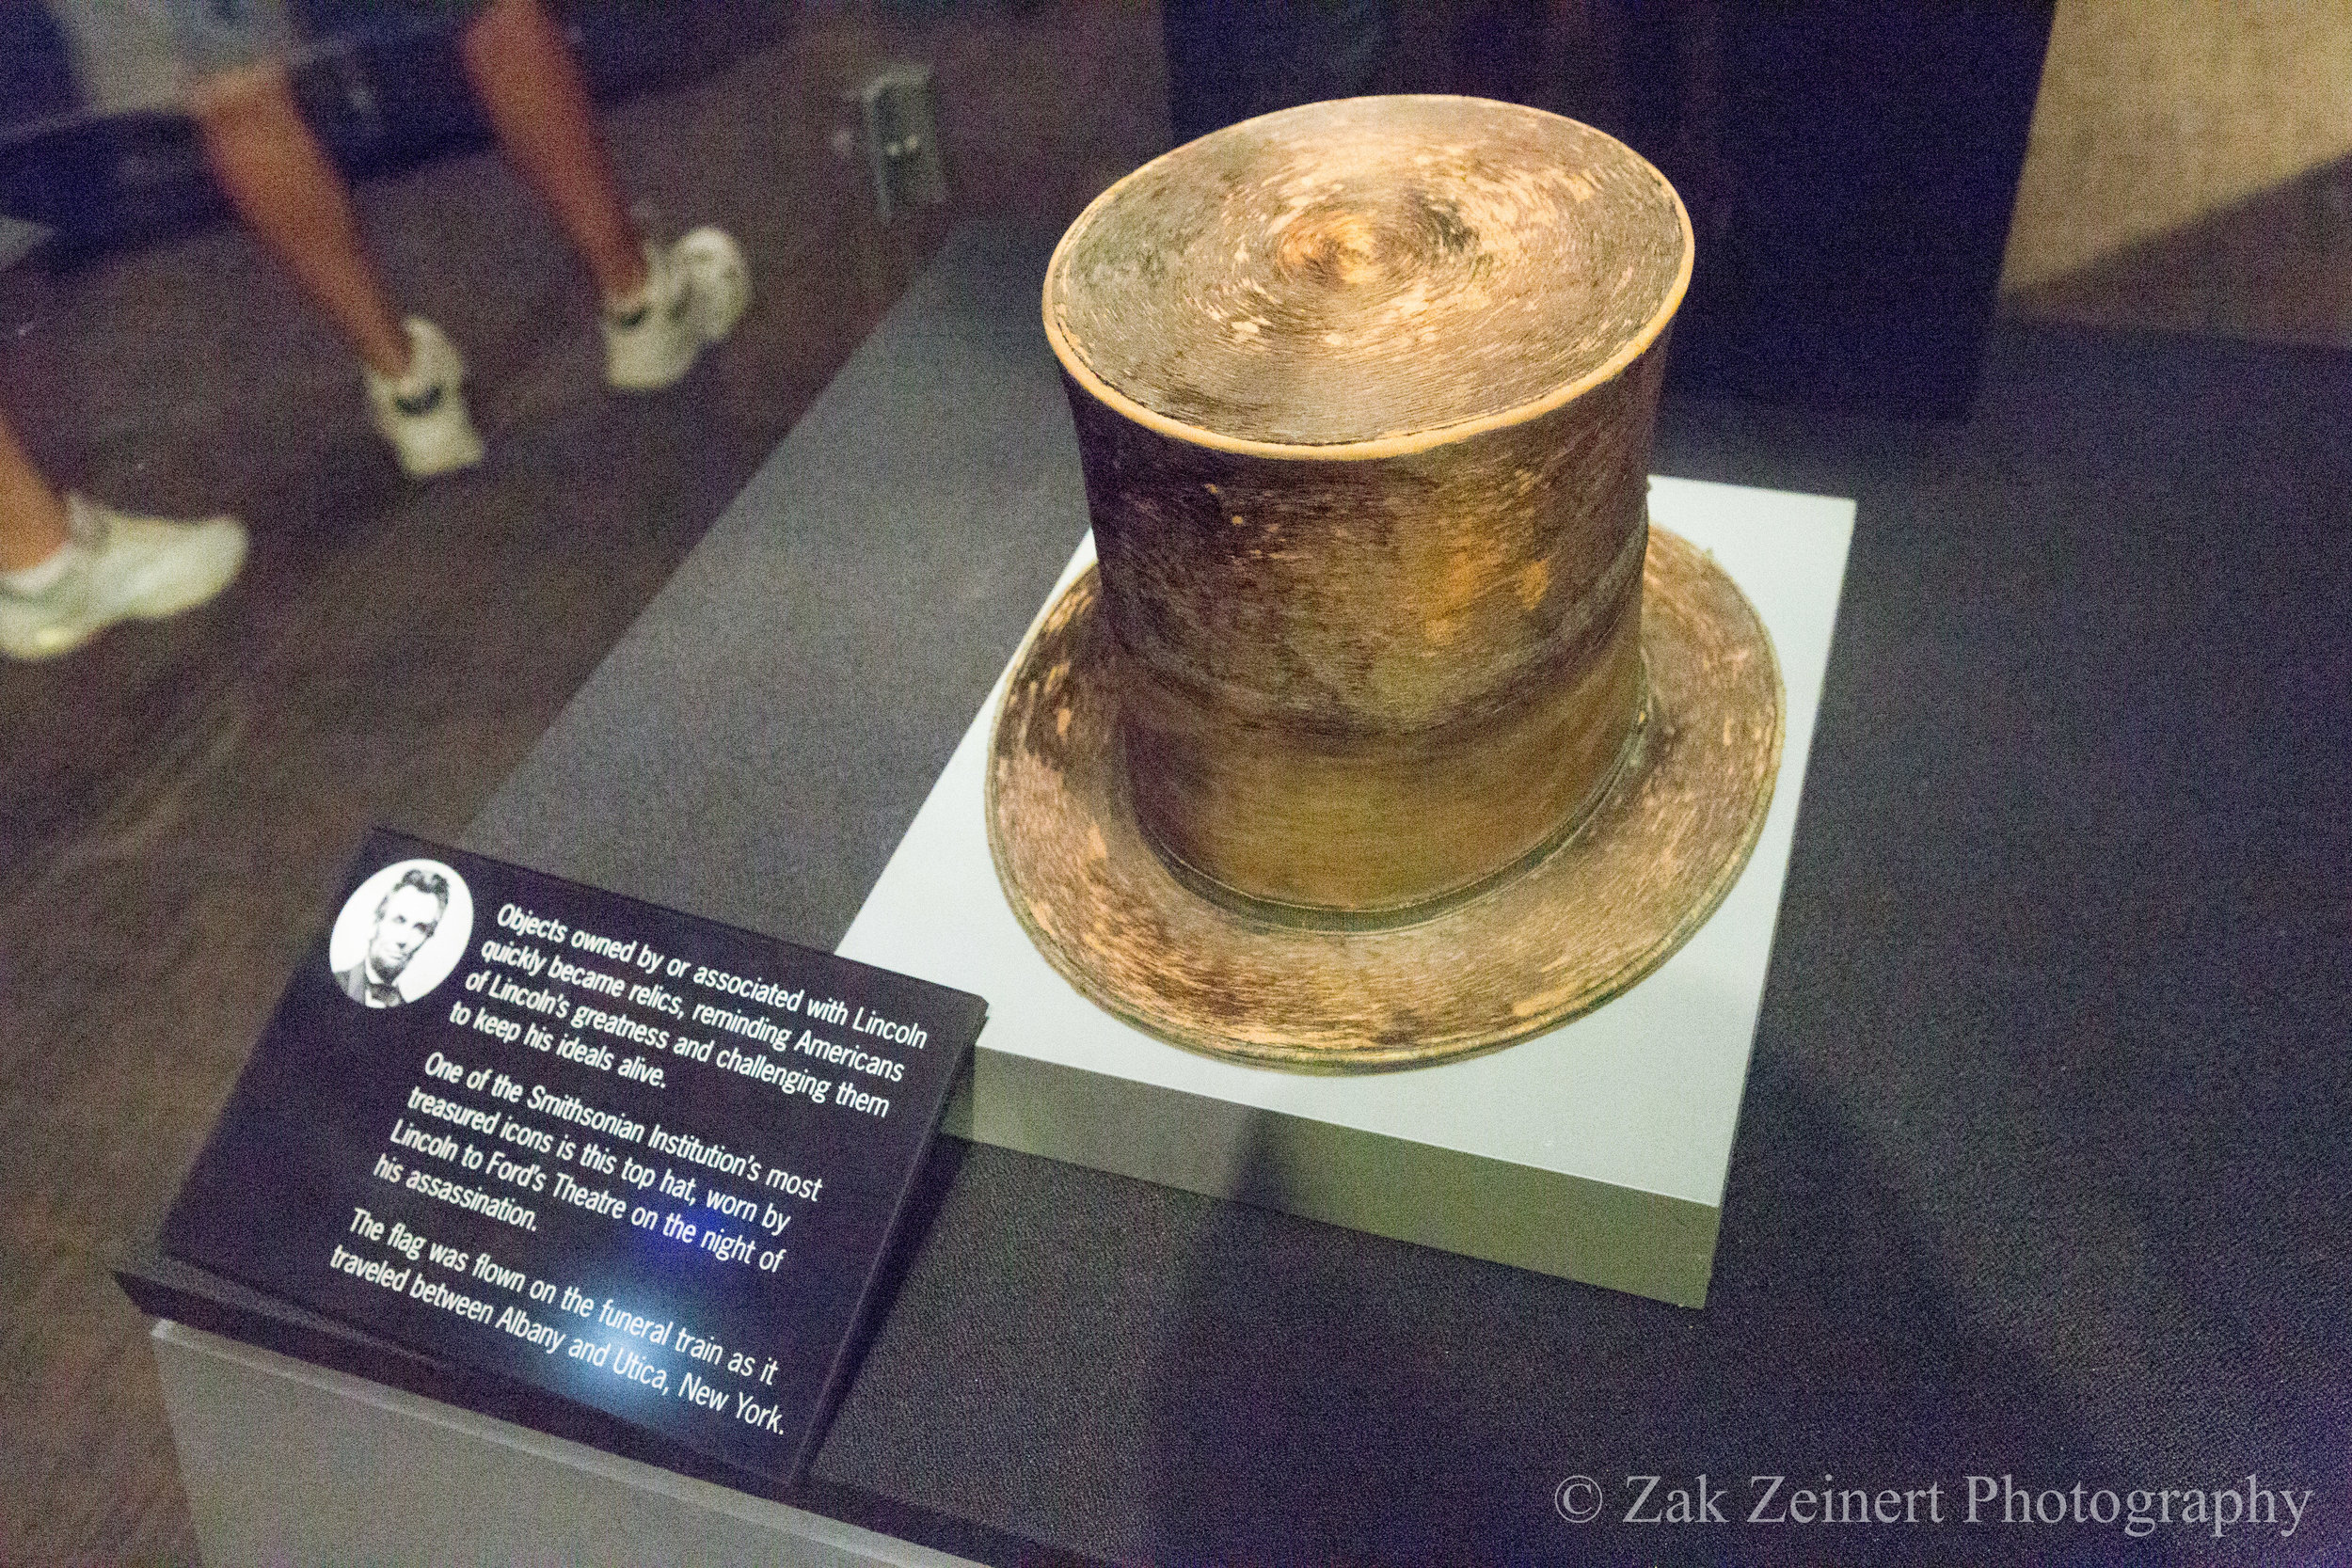 The top hat that Abraham Lincoln was wearing when he was assassinated. Taken at the Smithsonian American History Museum.